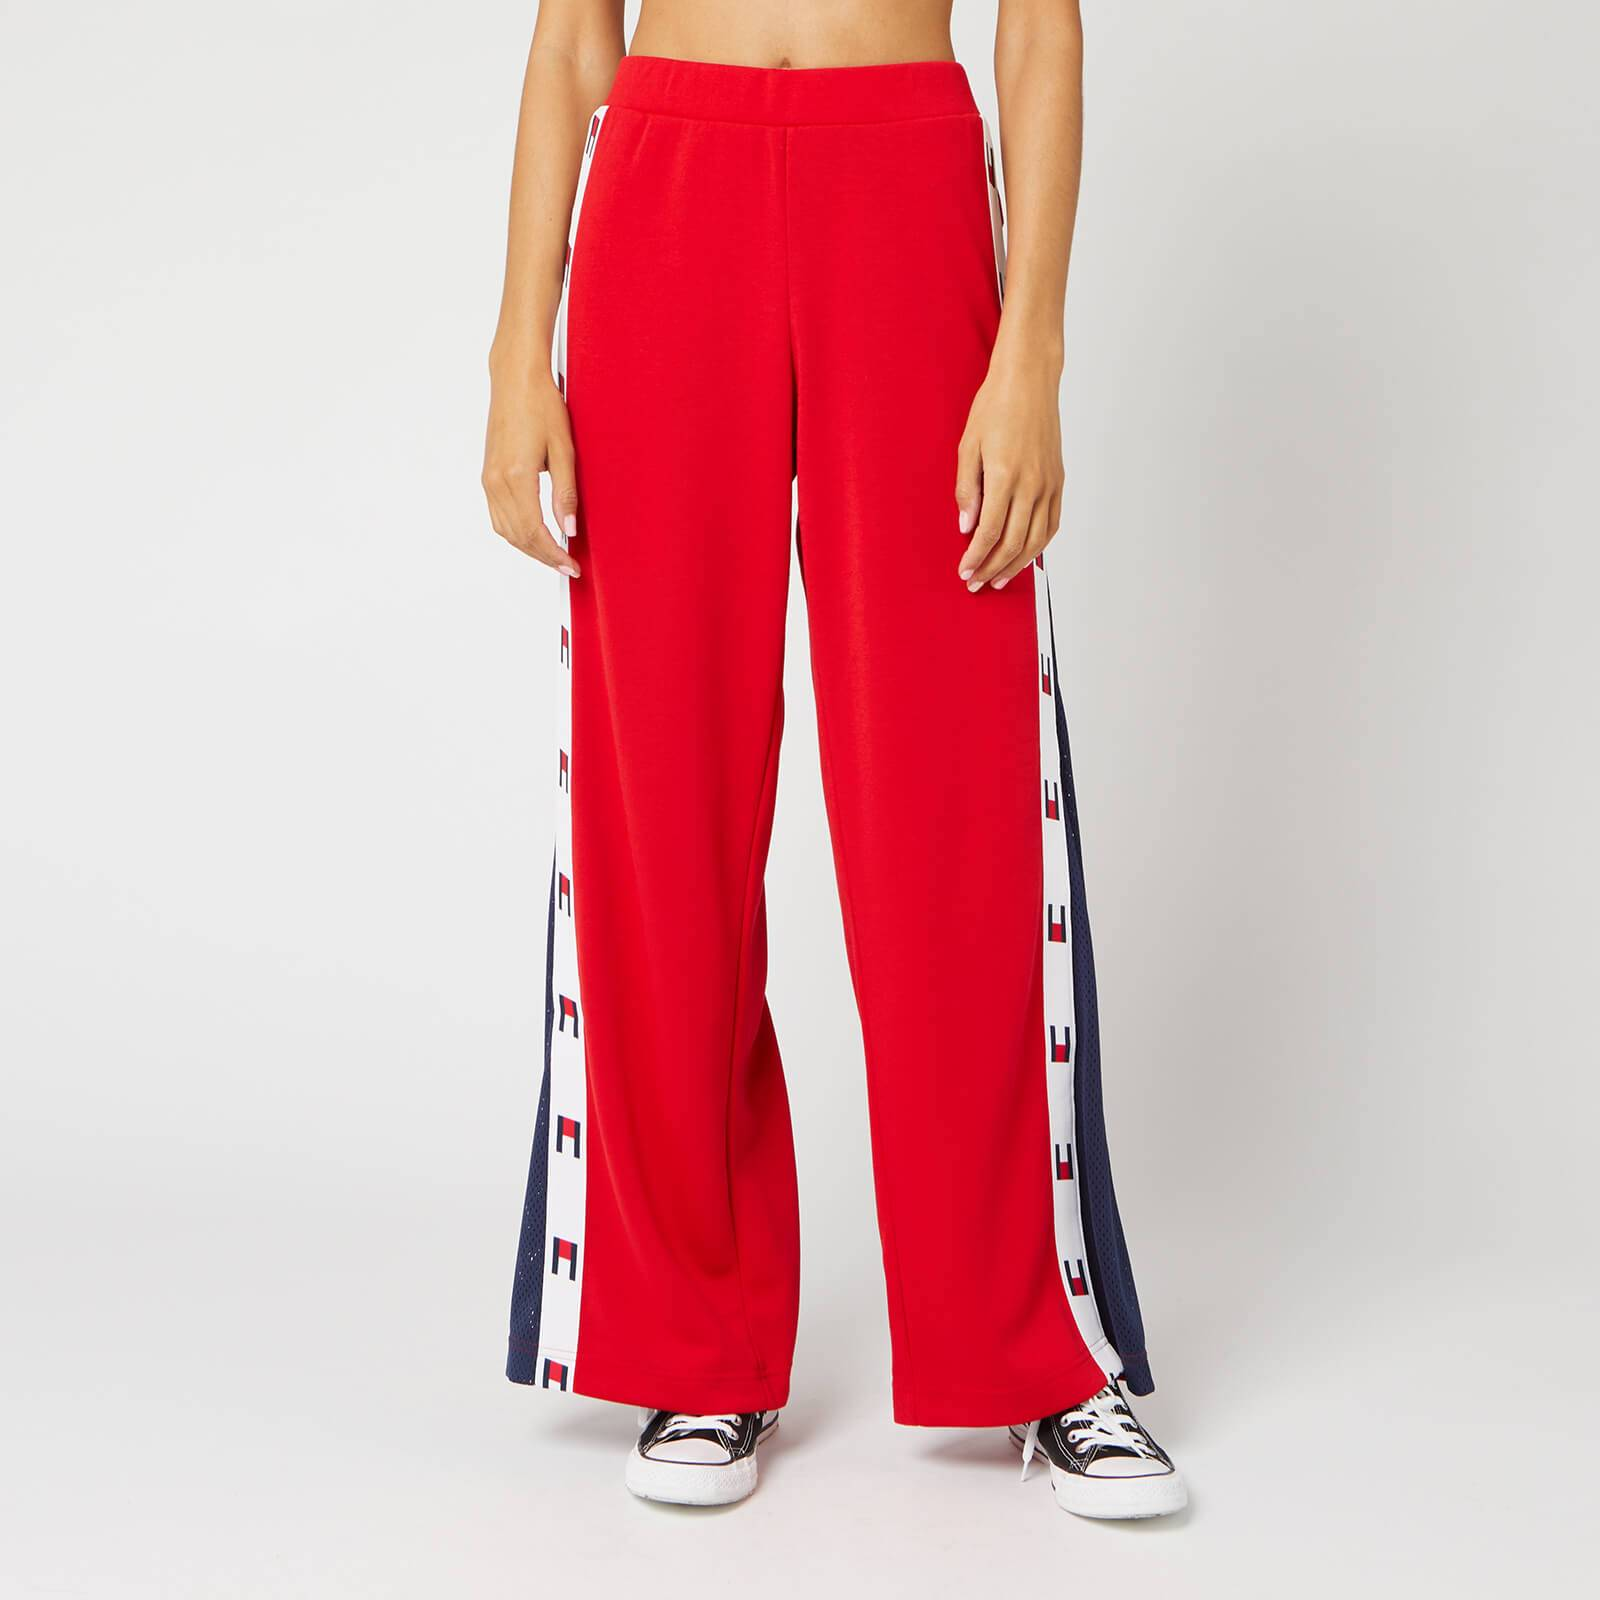 Tommy Hilfiger Sport Women's Flag Tape Flare Pants - True Red - XS